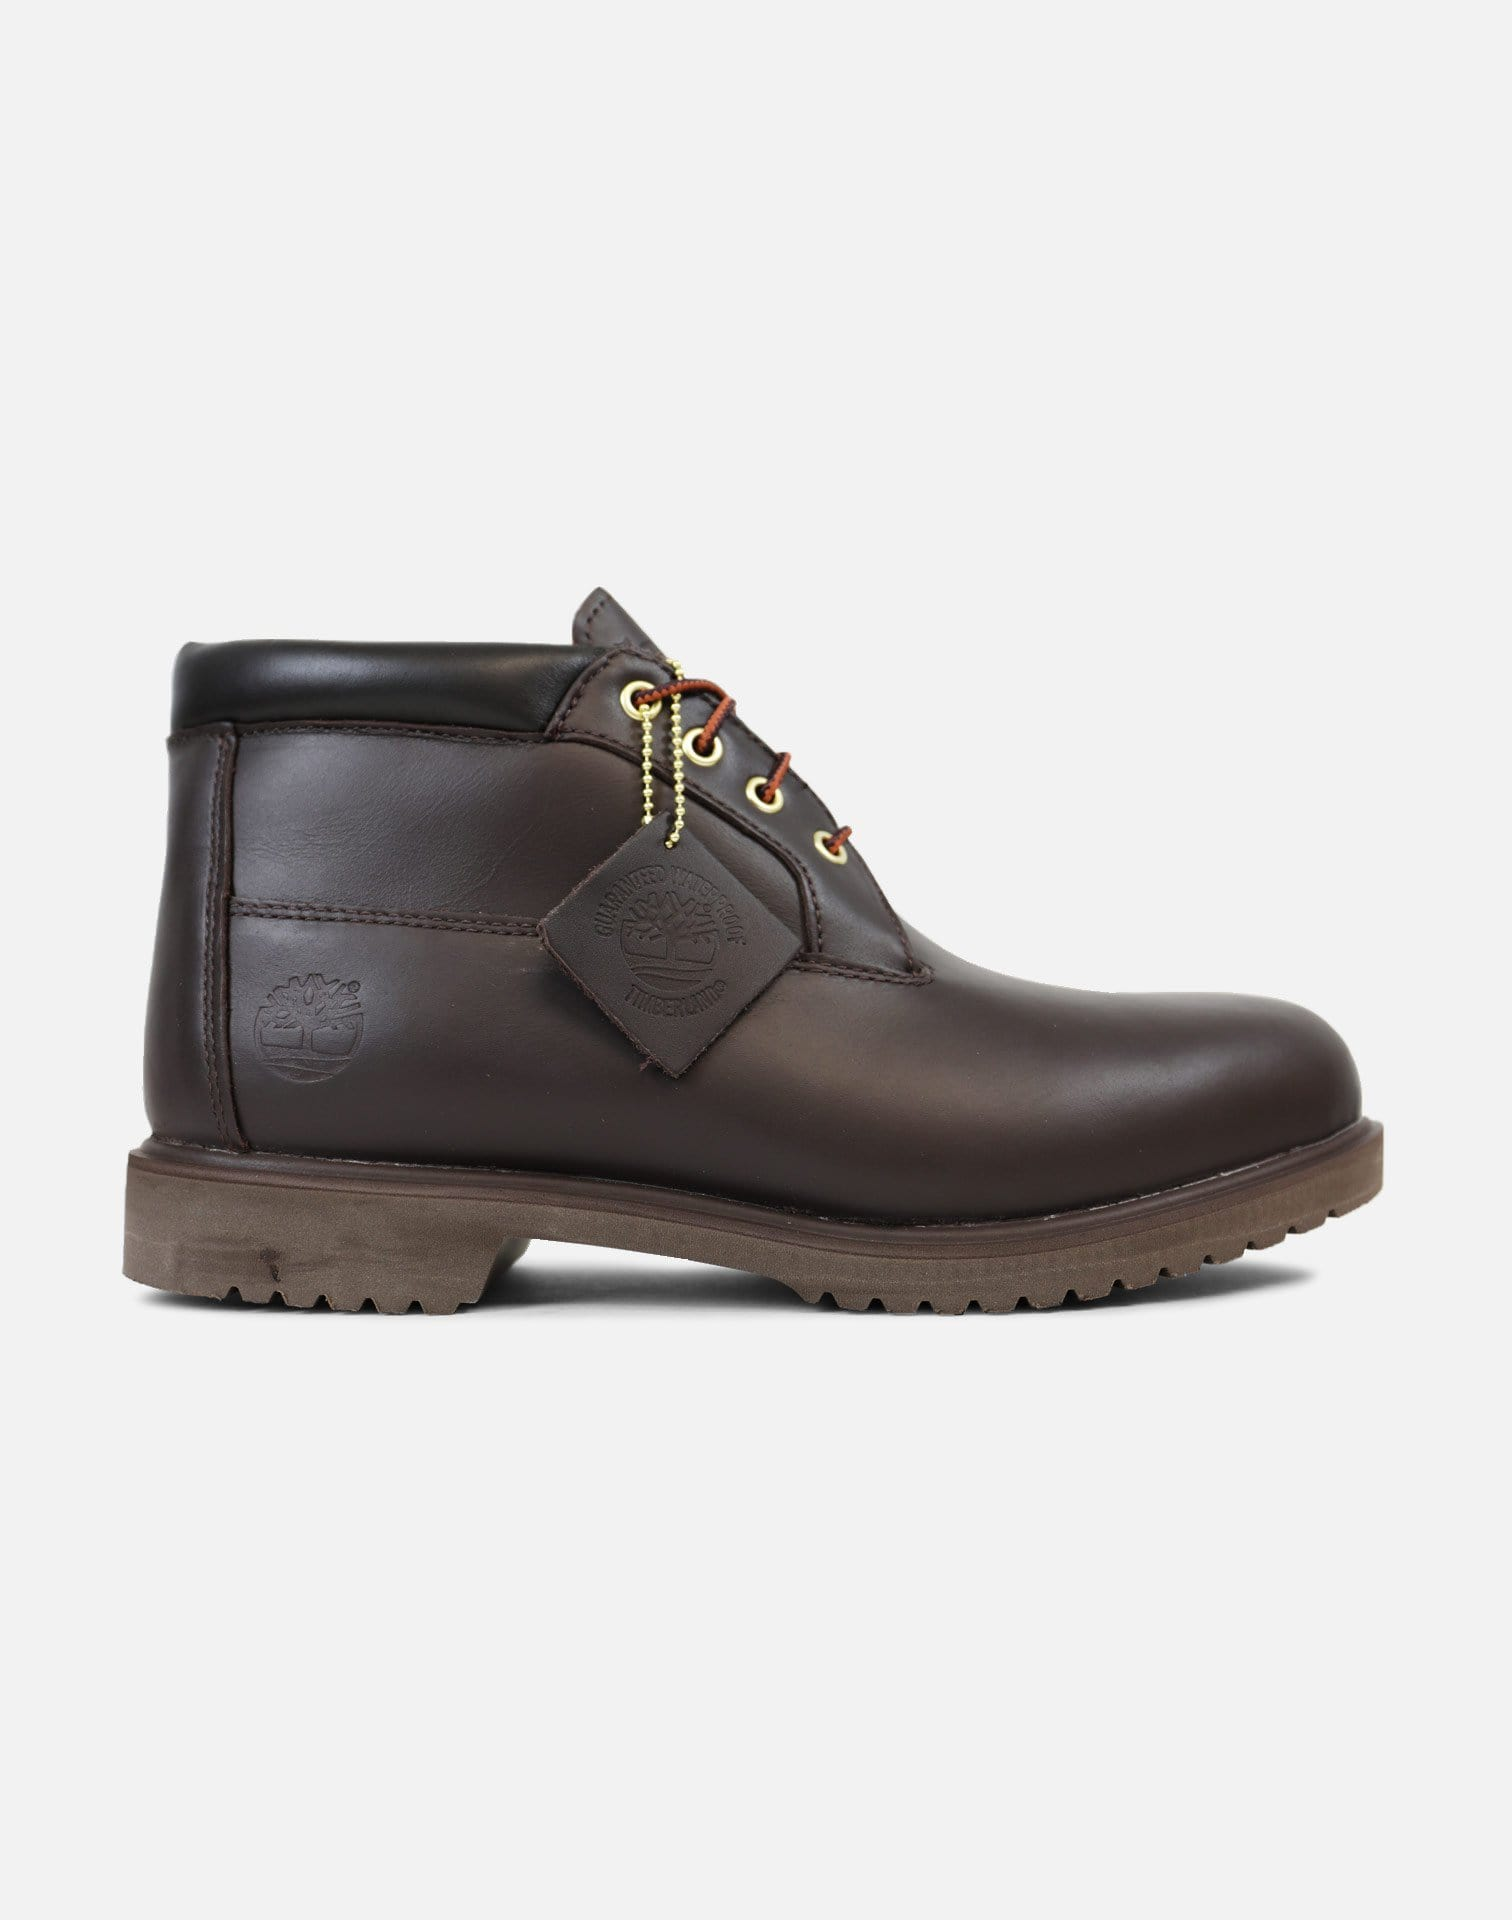 Timberland Premium Waterproof Chukka (Brown)